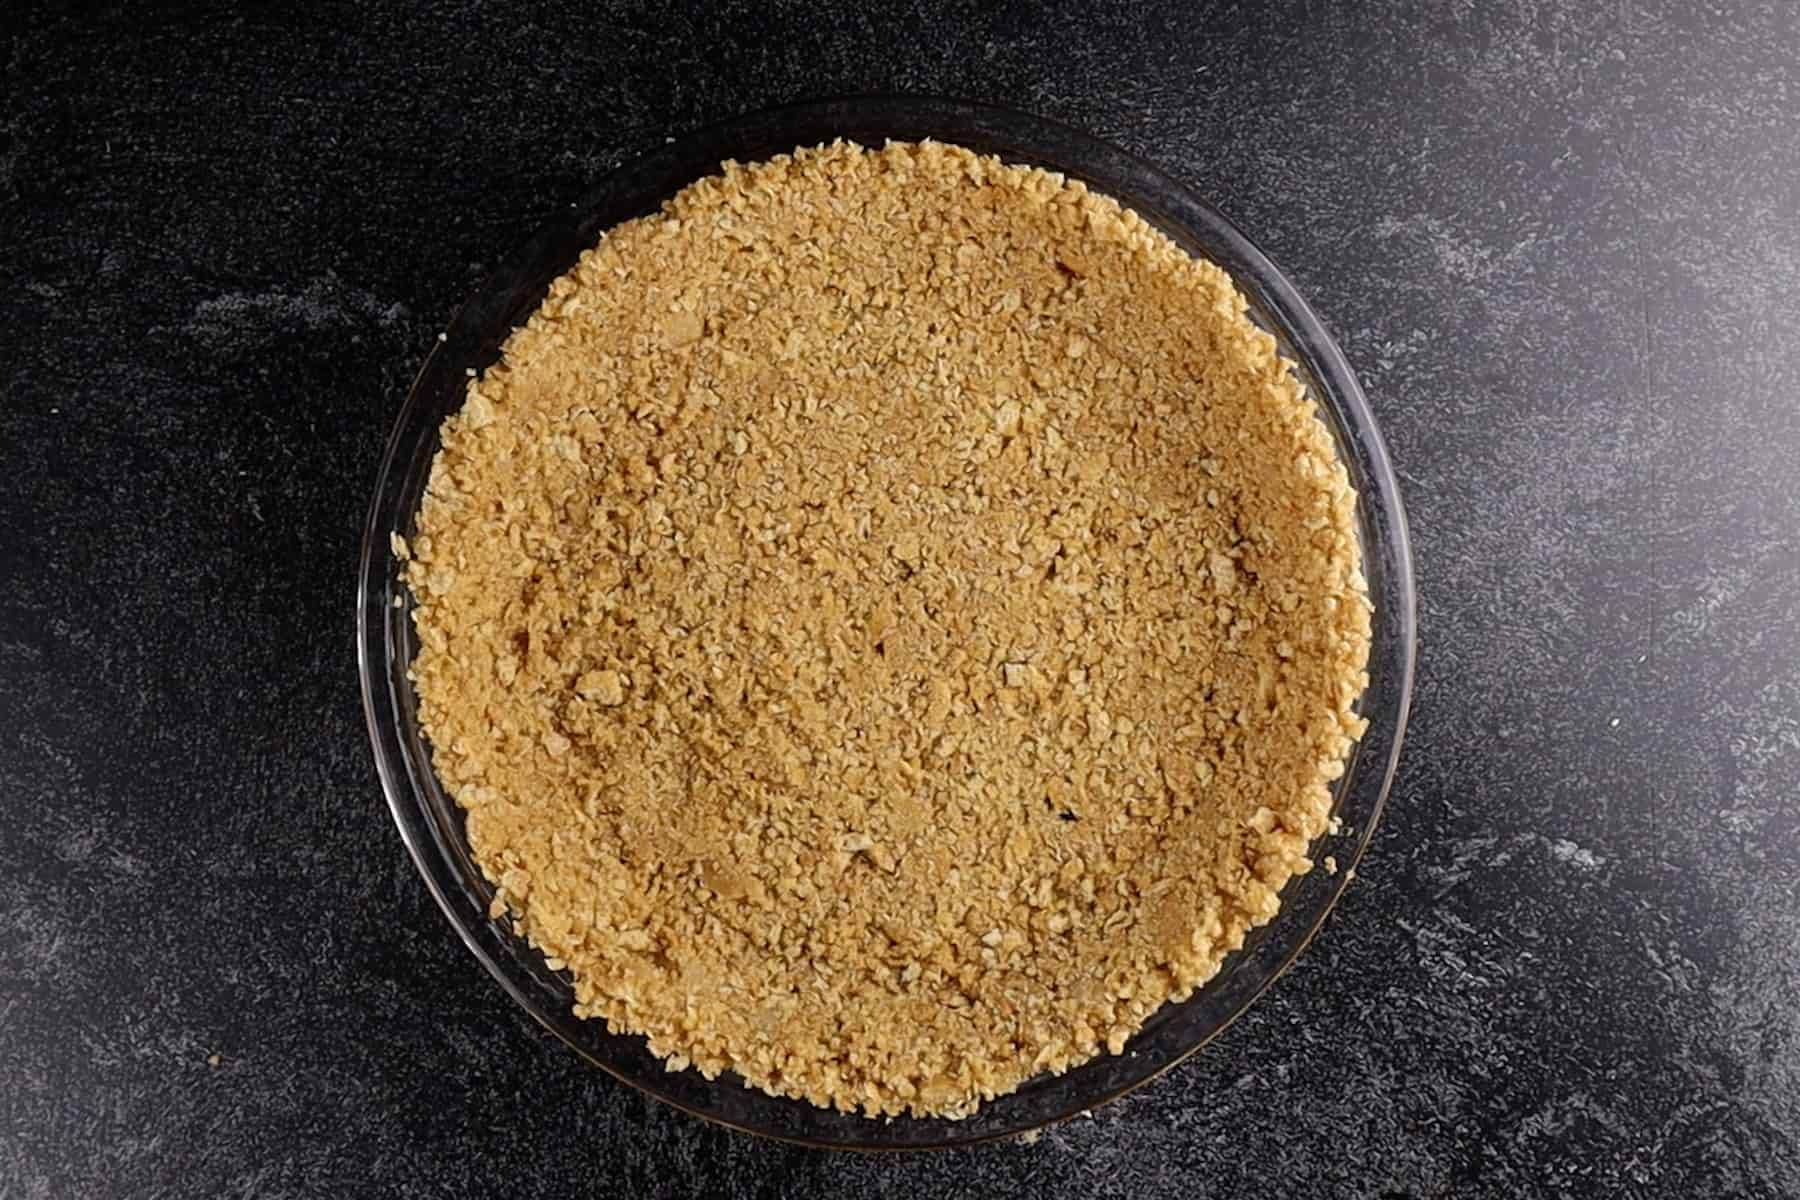 graham cracker crust after baking